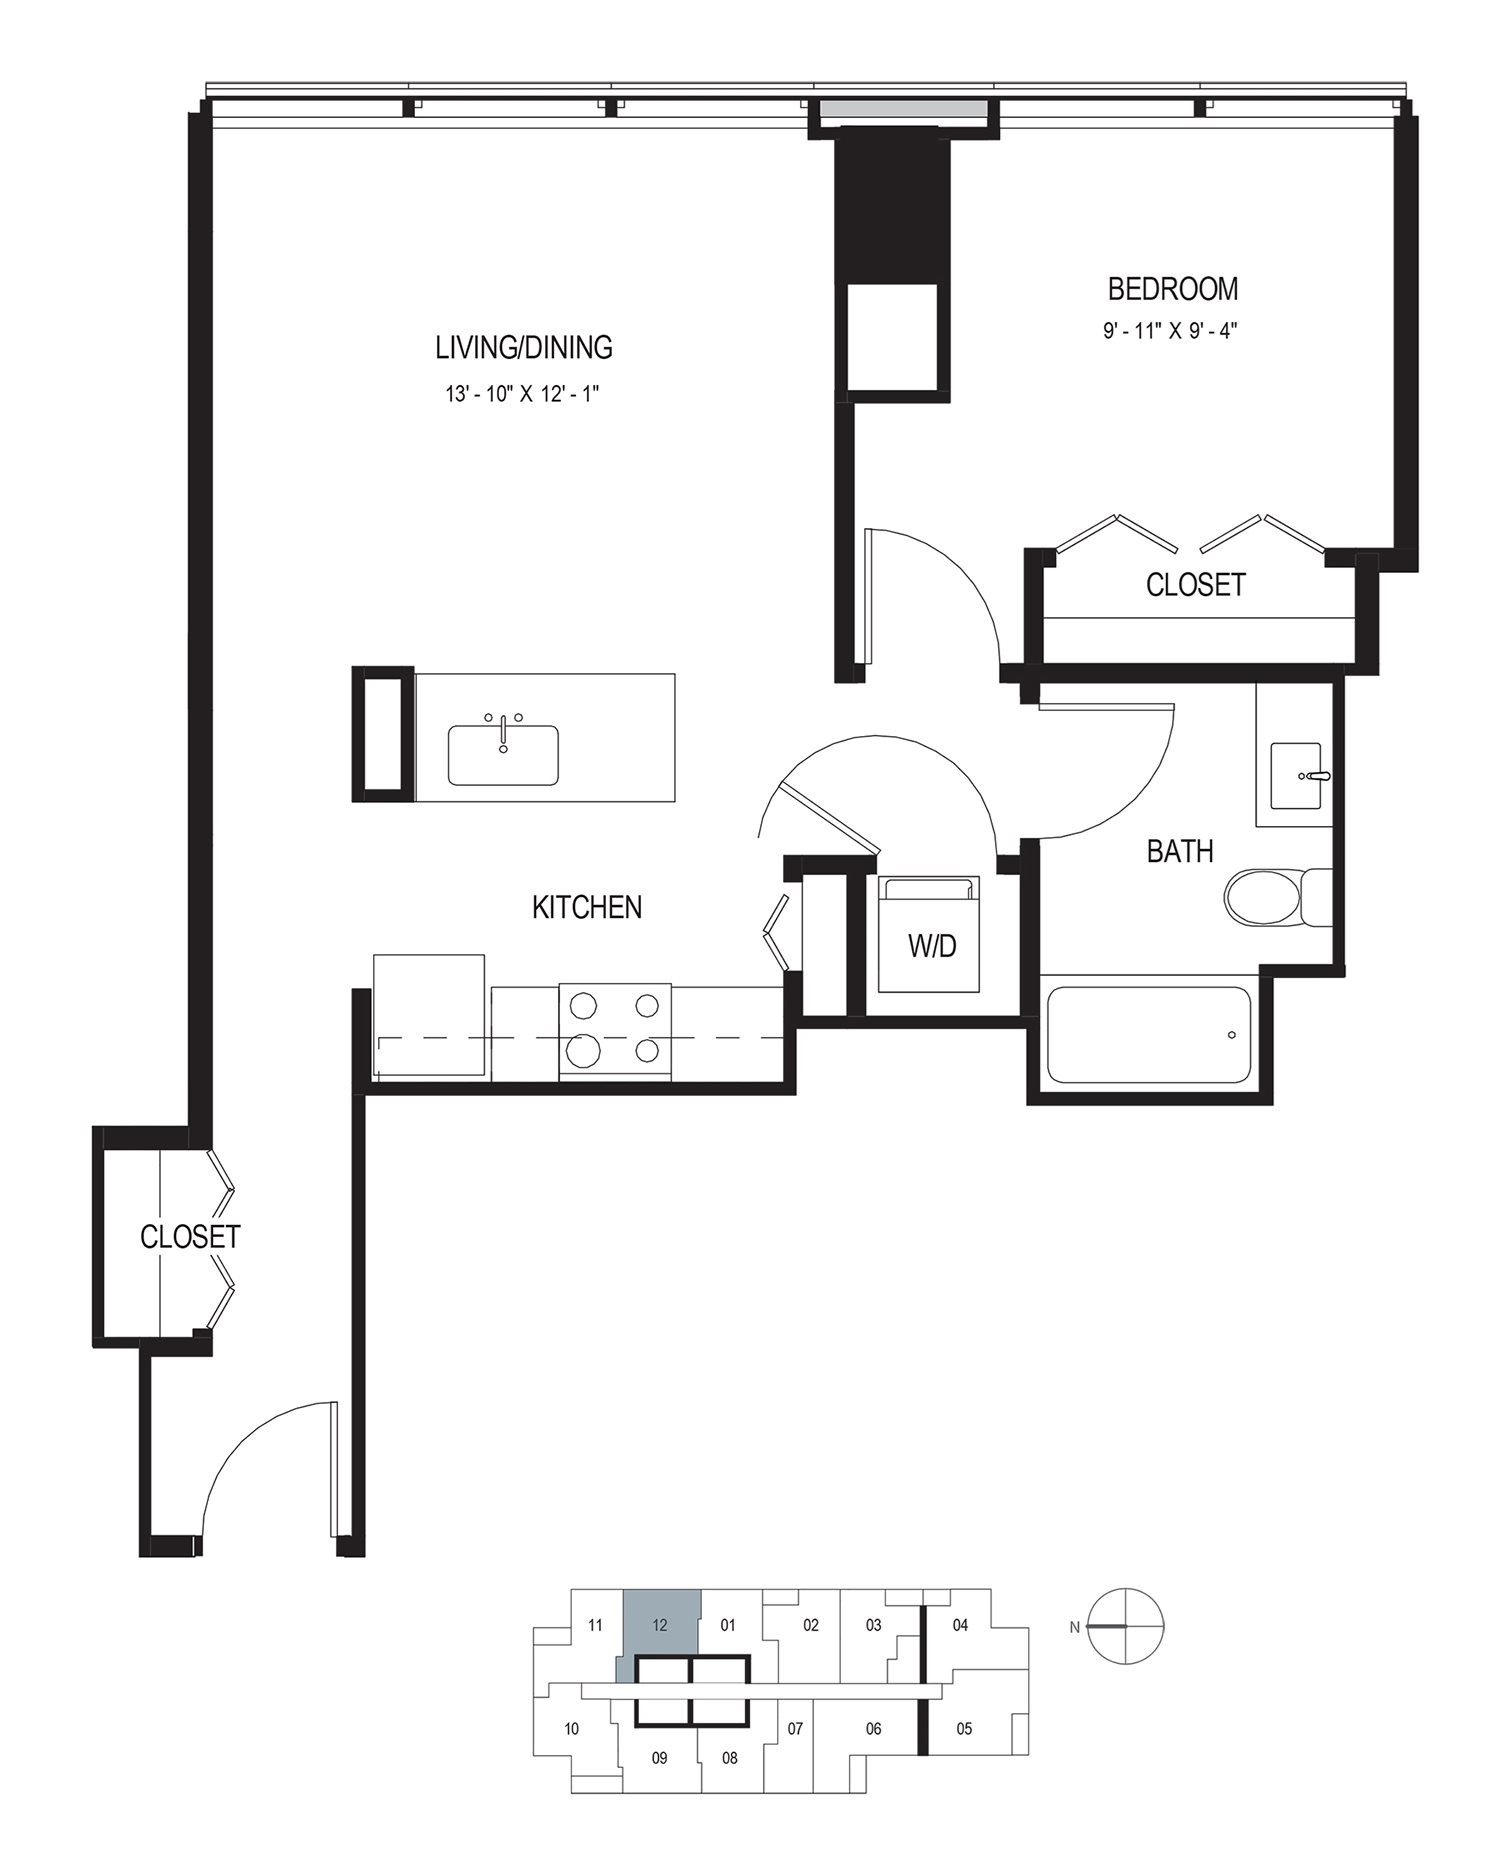 One Bedroom (678 sf) Floor Plan 5